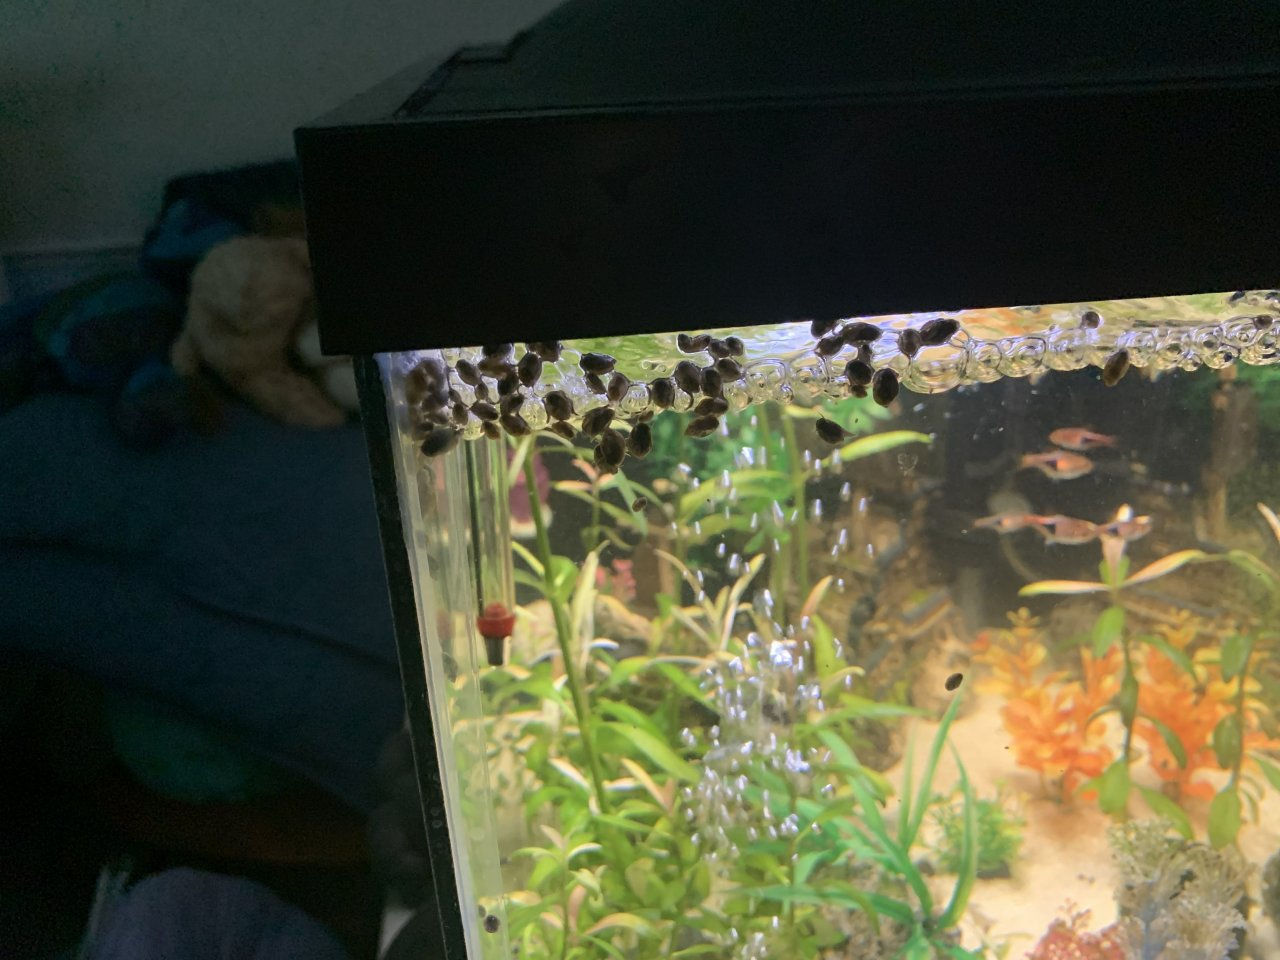 Here Are Some Pics Of My Pond Snail Infestation!!!   My ...